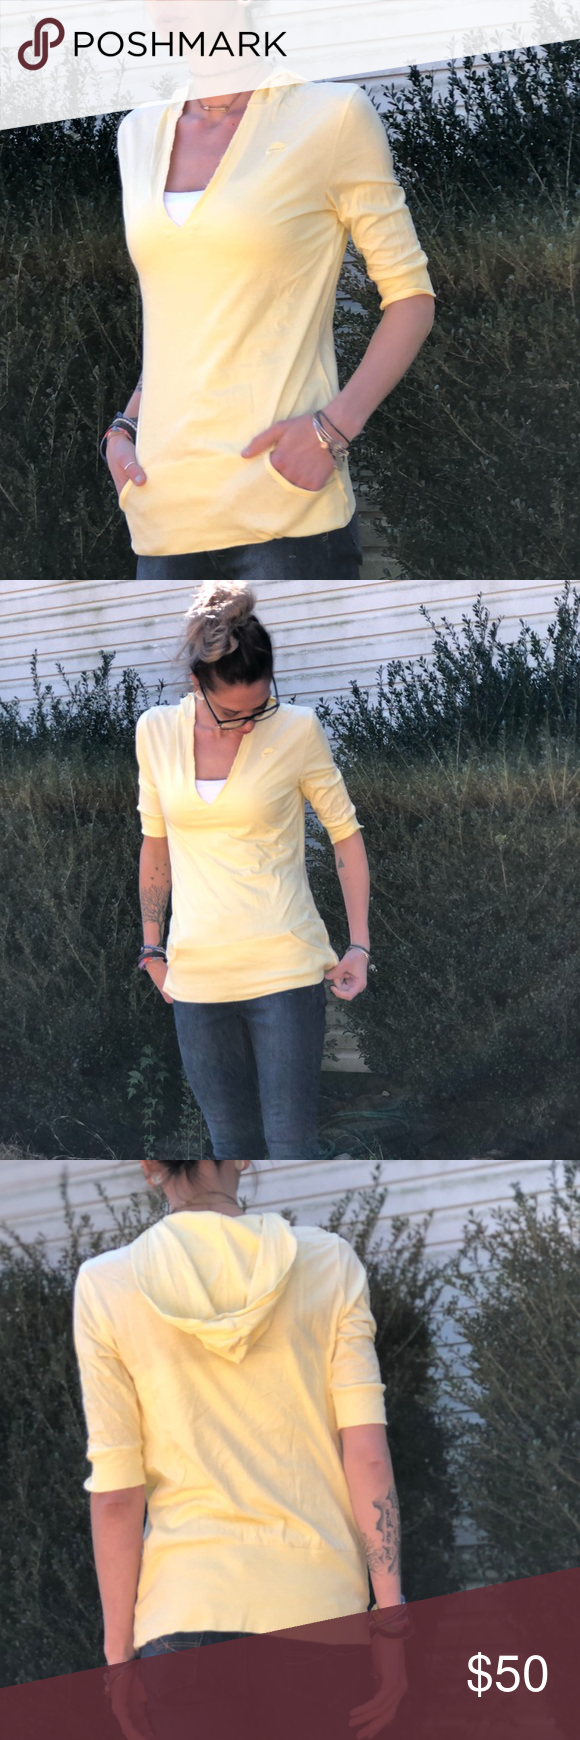 Light yellow 3 quarter length sleeved, with hoodie This lightweight thin hoodie-like top is great for just about any season! With the Nike logo on the top left chest. Tiny pockets on the bottom band. Only worn a time or two!! Nike Tops #niketops